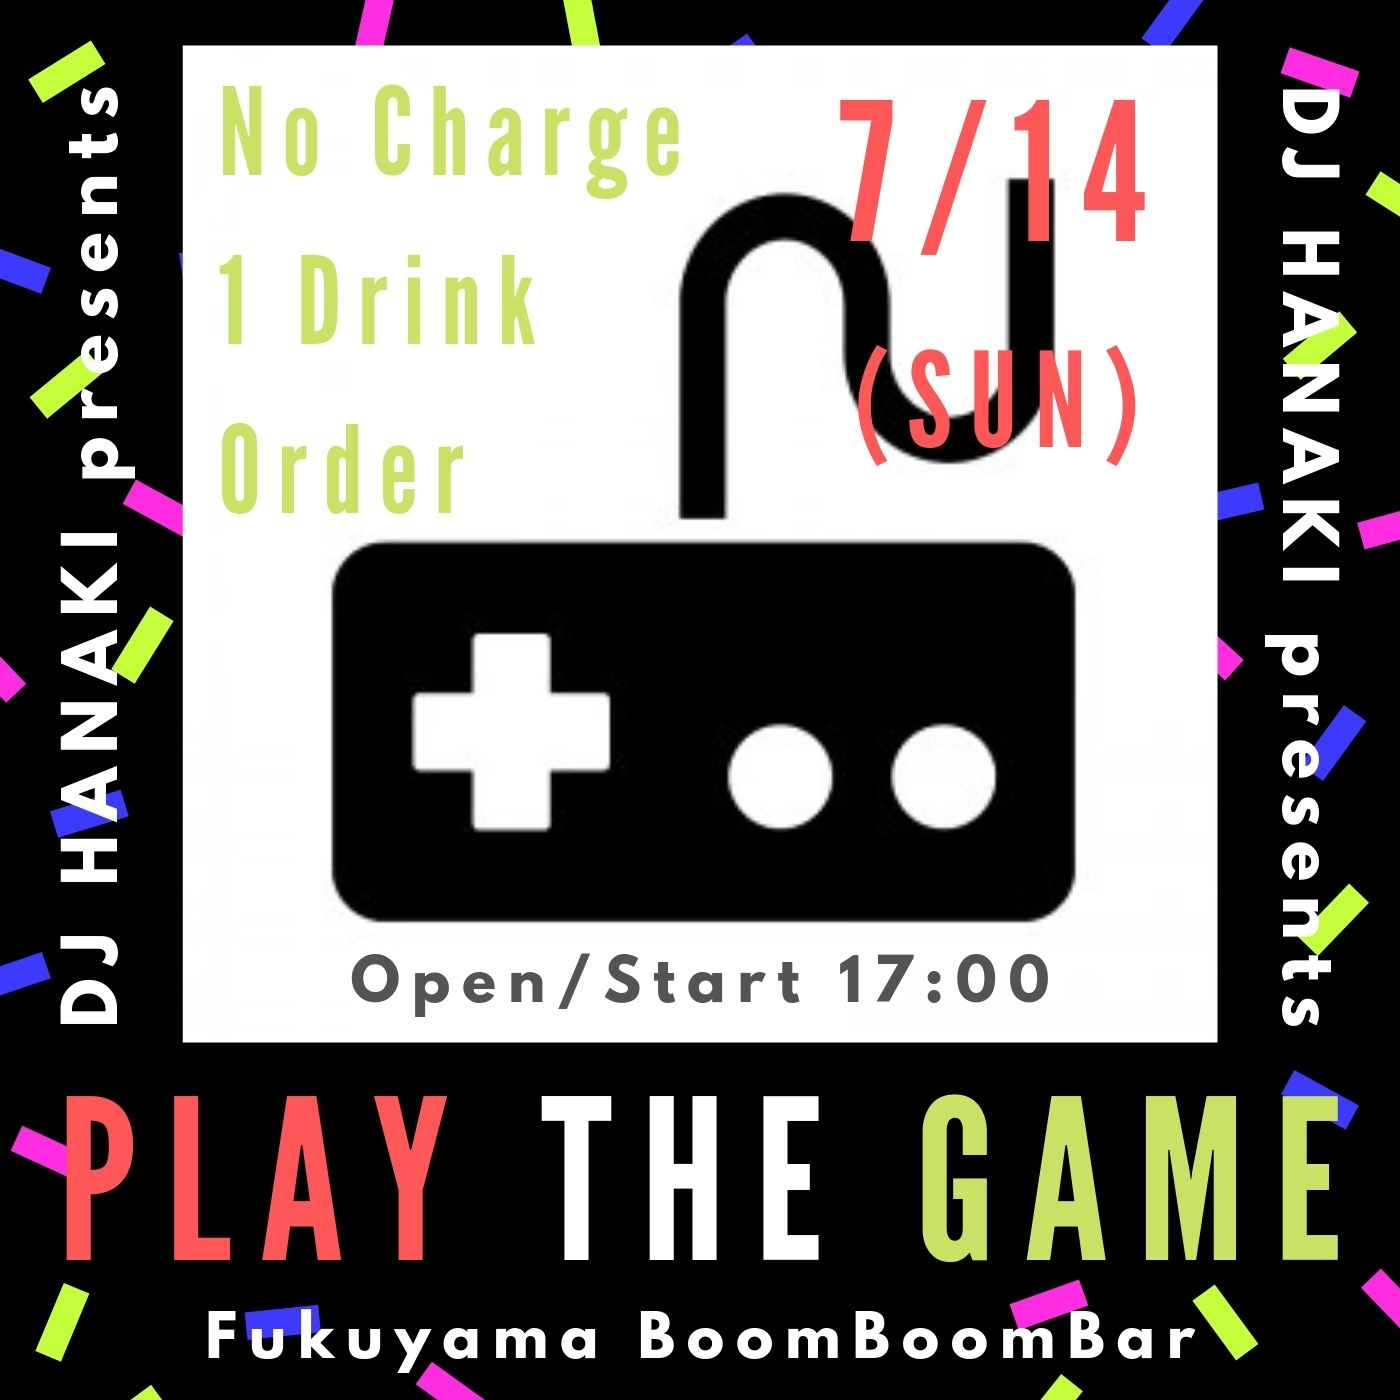 「『PLAY THE GAME』」の画像